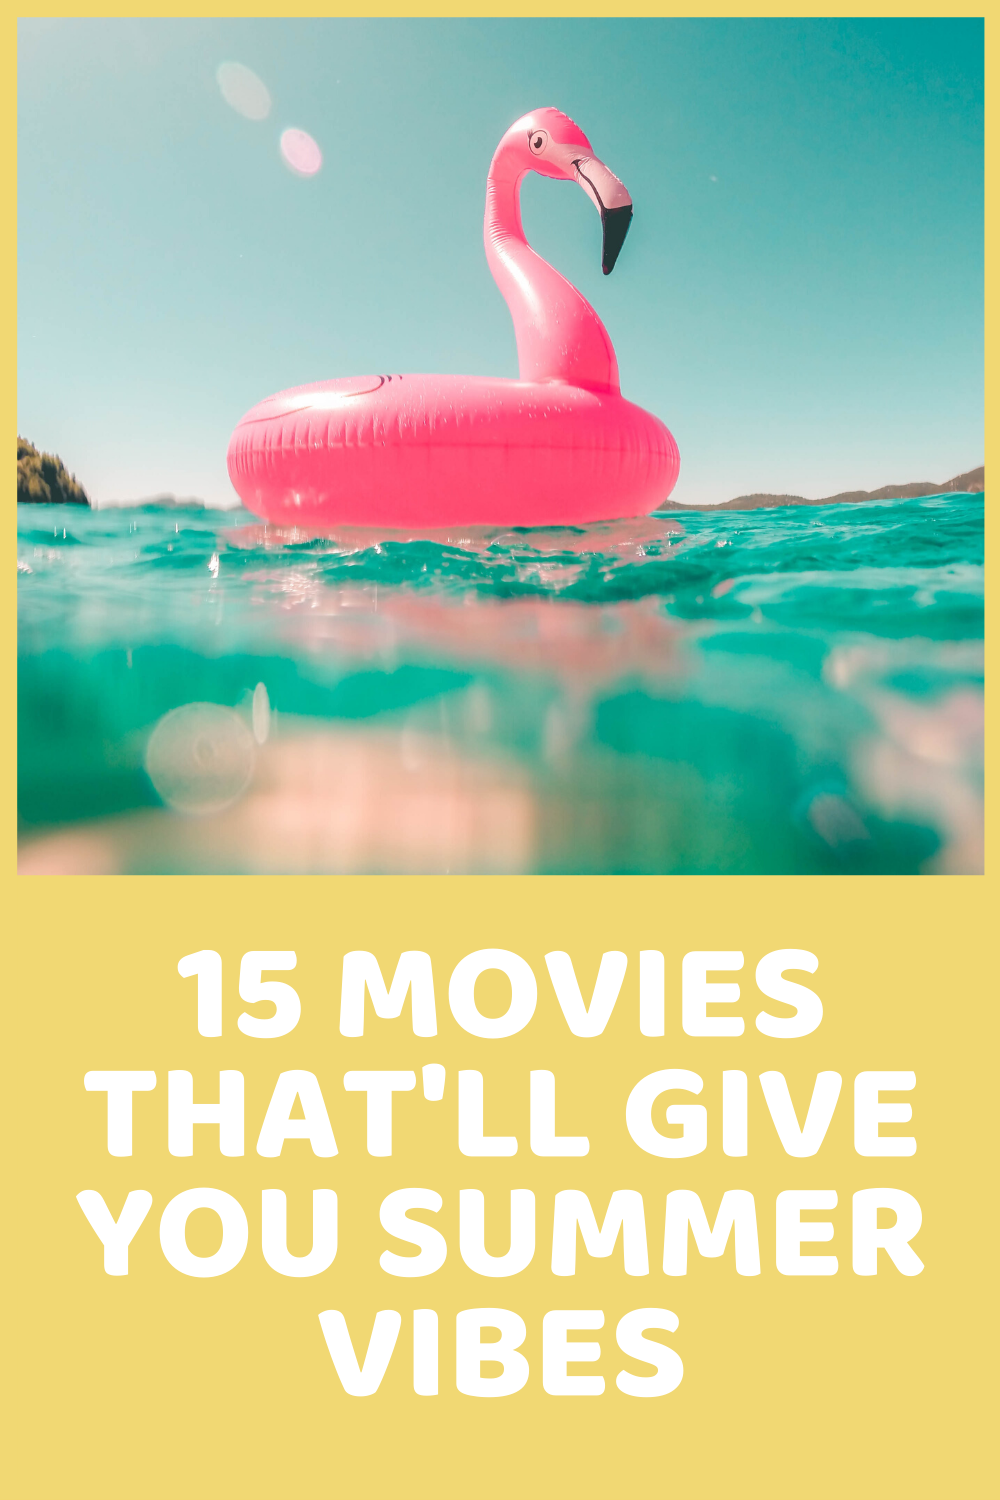 15 Movies That'll Give You Summer Vibes